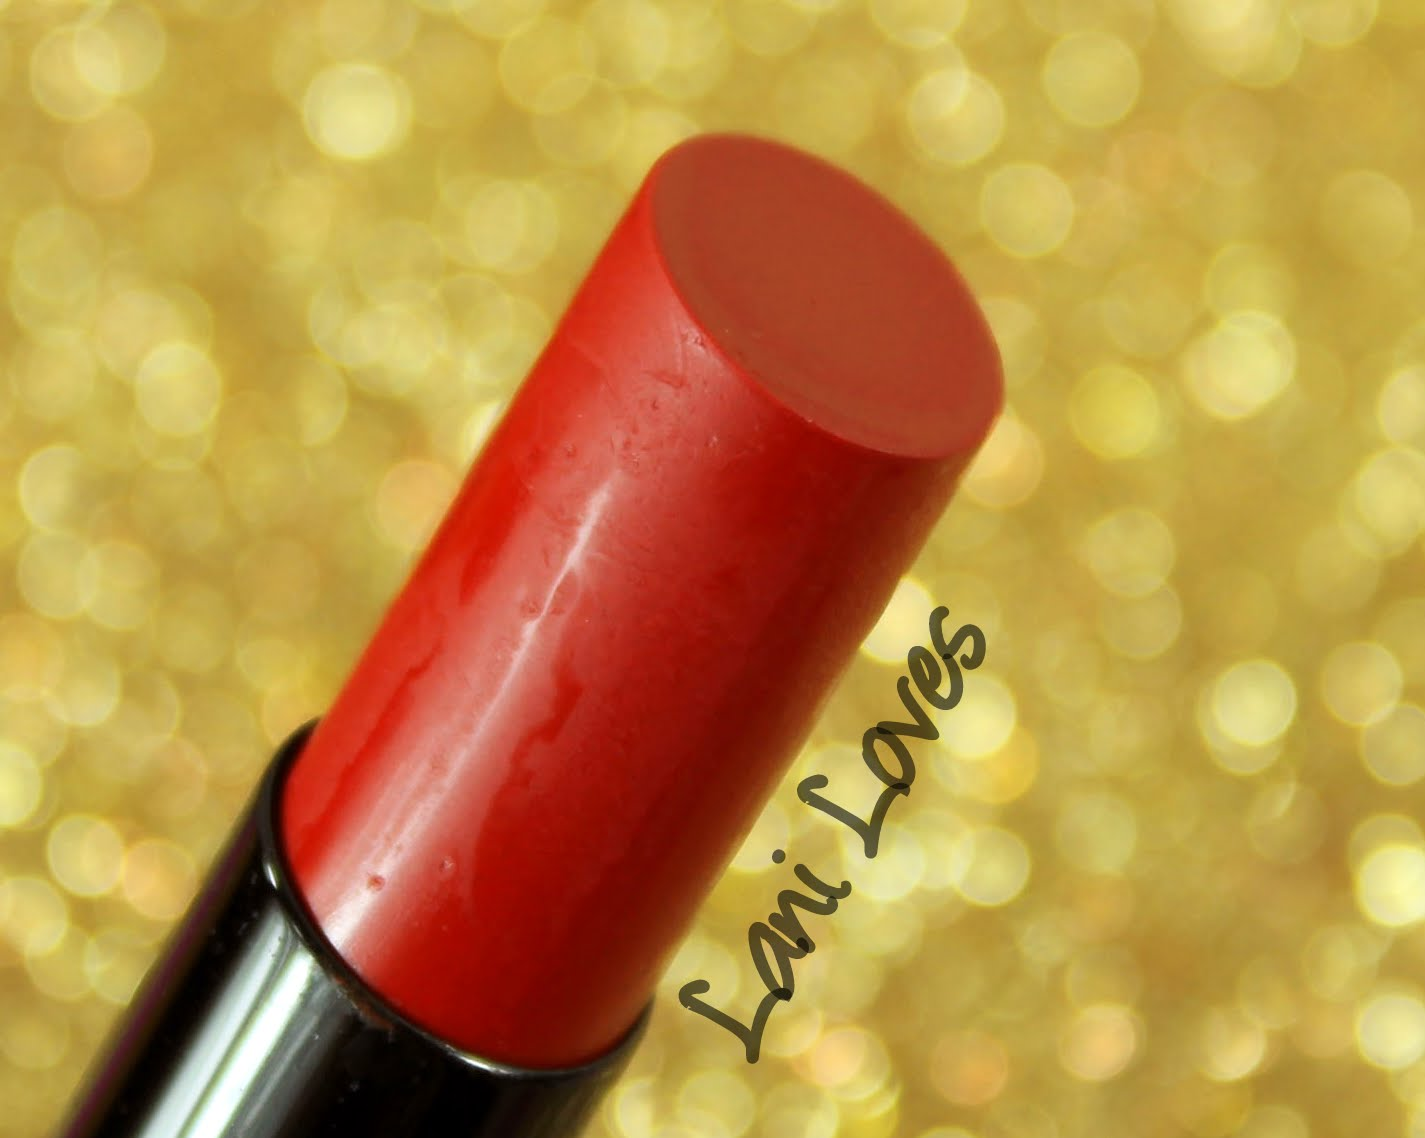 ZA Vibrant Moist Lipstick - RD444 swatches & review